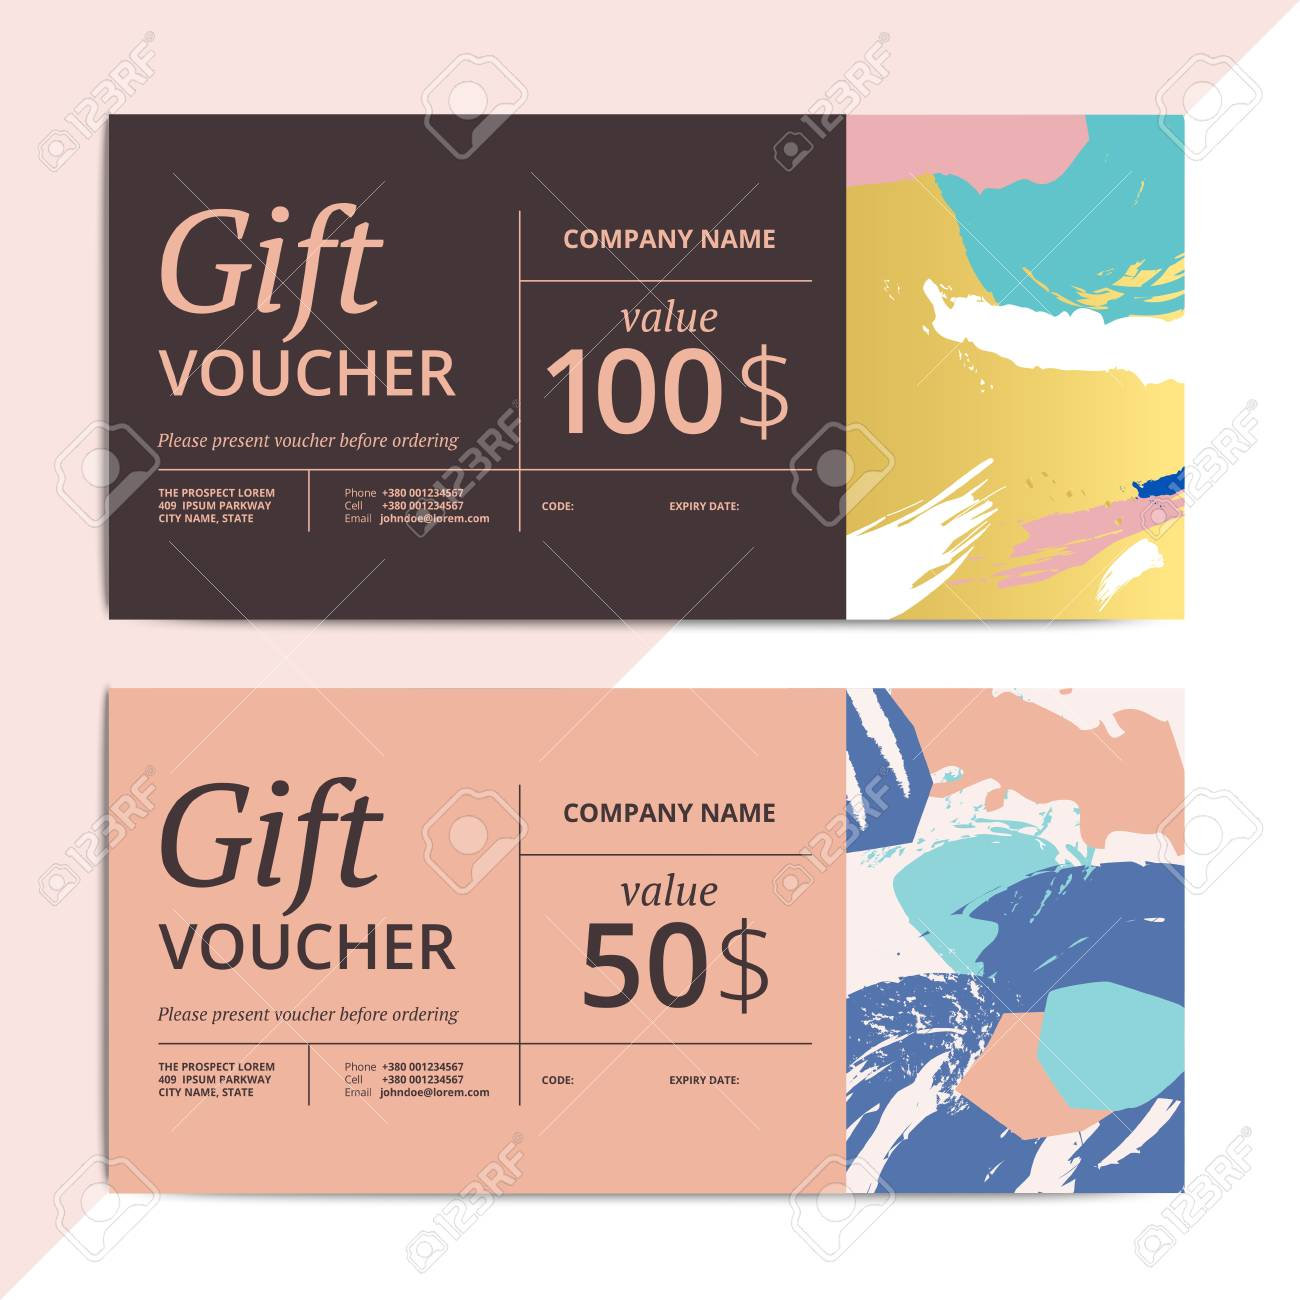 Trendy abstract gift voucher card templates modern luxury discount trendy abstract gift voucher card templates modern luxury discount coupon or certificate layout with artistic yelopaper Image collections